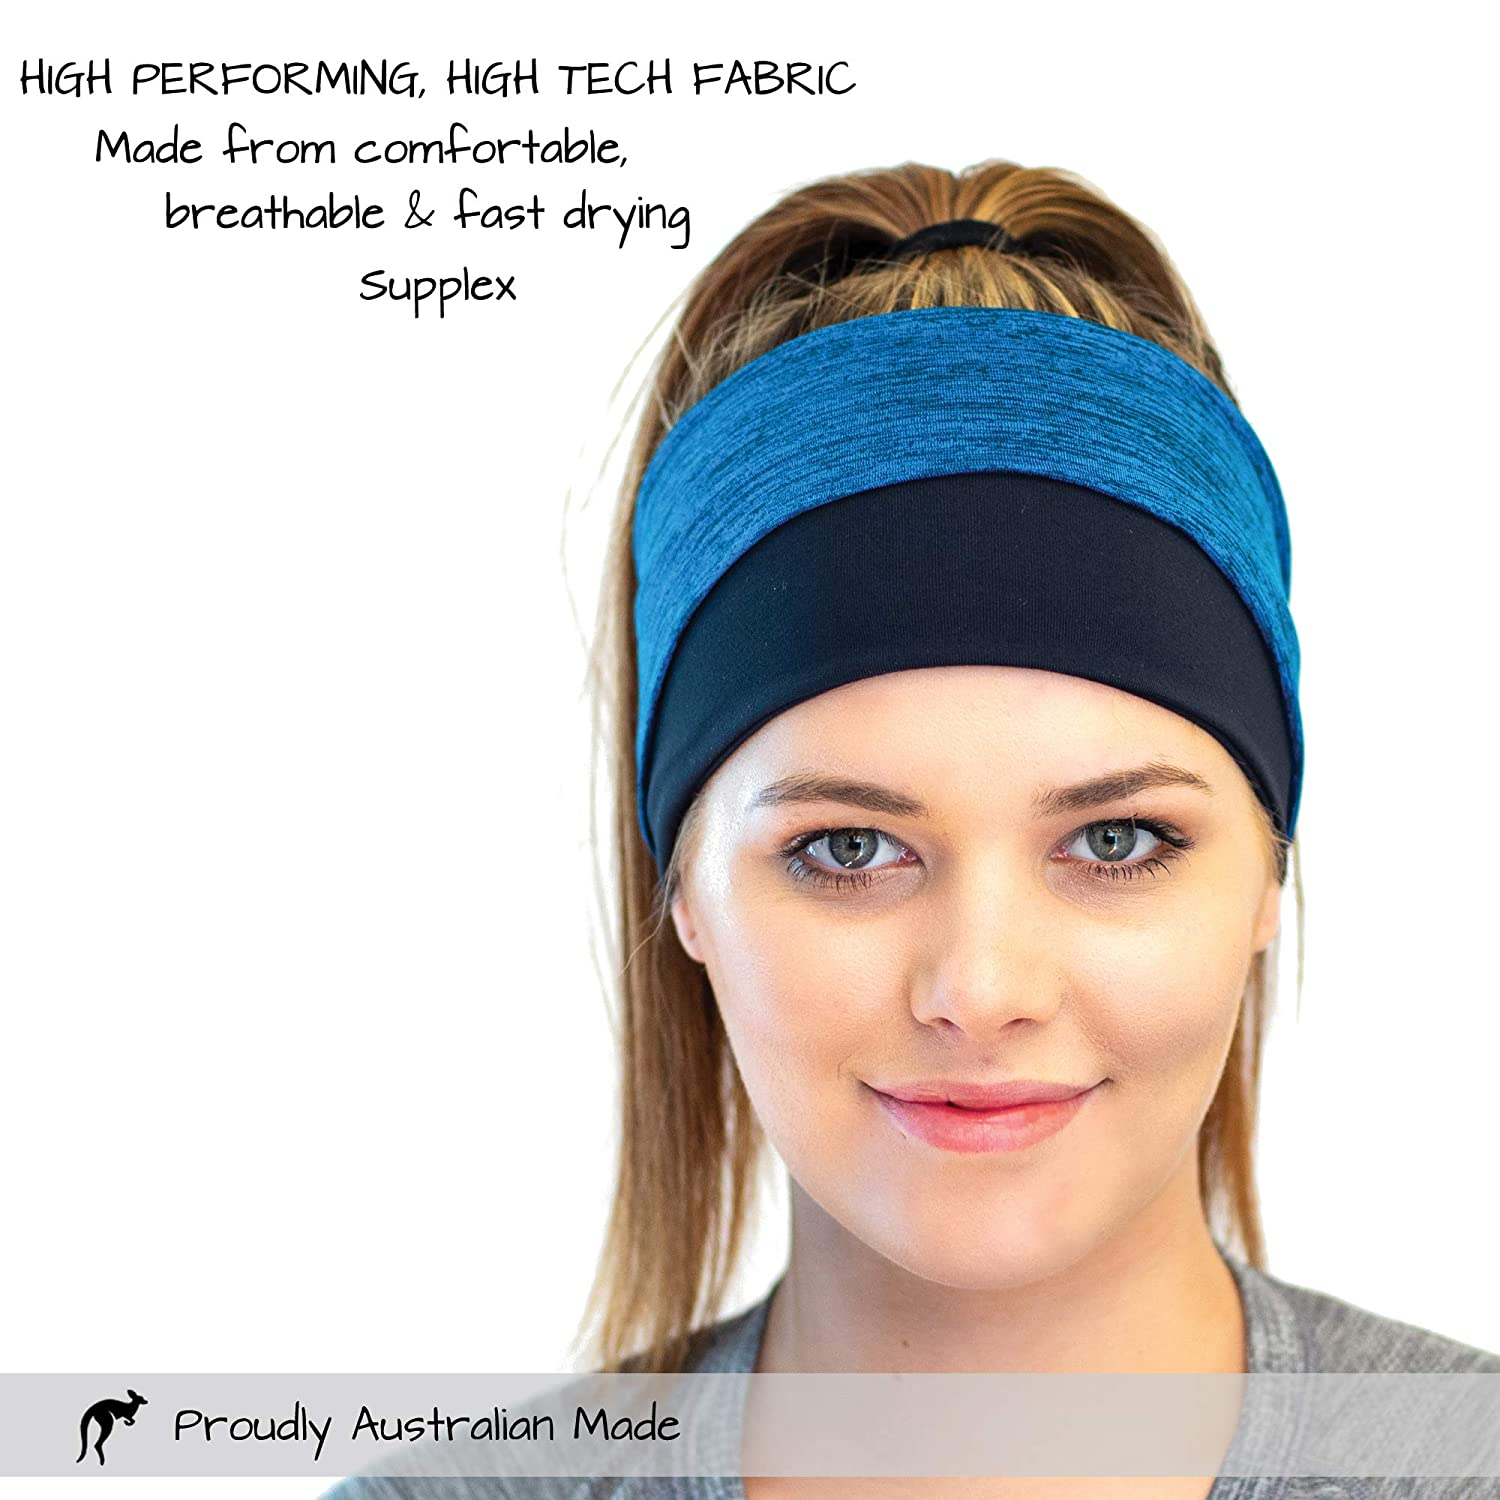 by Red Dust Active Always Stays Put Ponytail Compatible for Sport Never Itchy Running Headband and Winter Ear Warmer for Women Workouts and Cold Weather Athletic Adventures